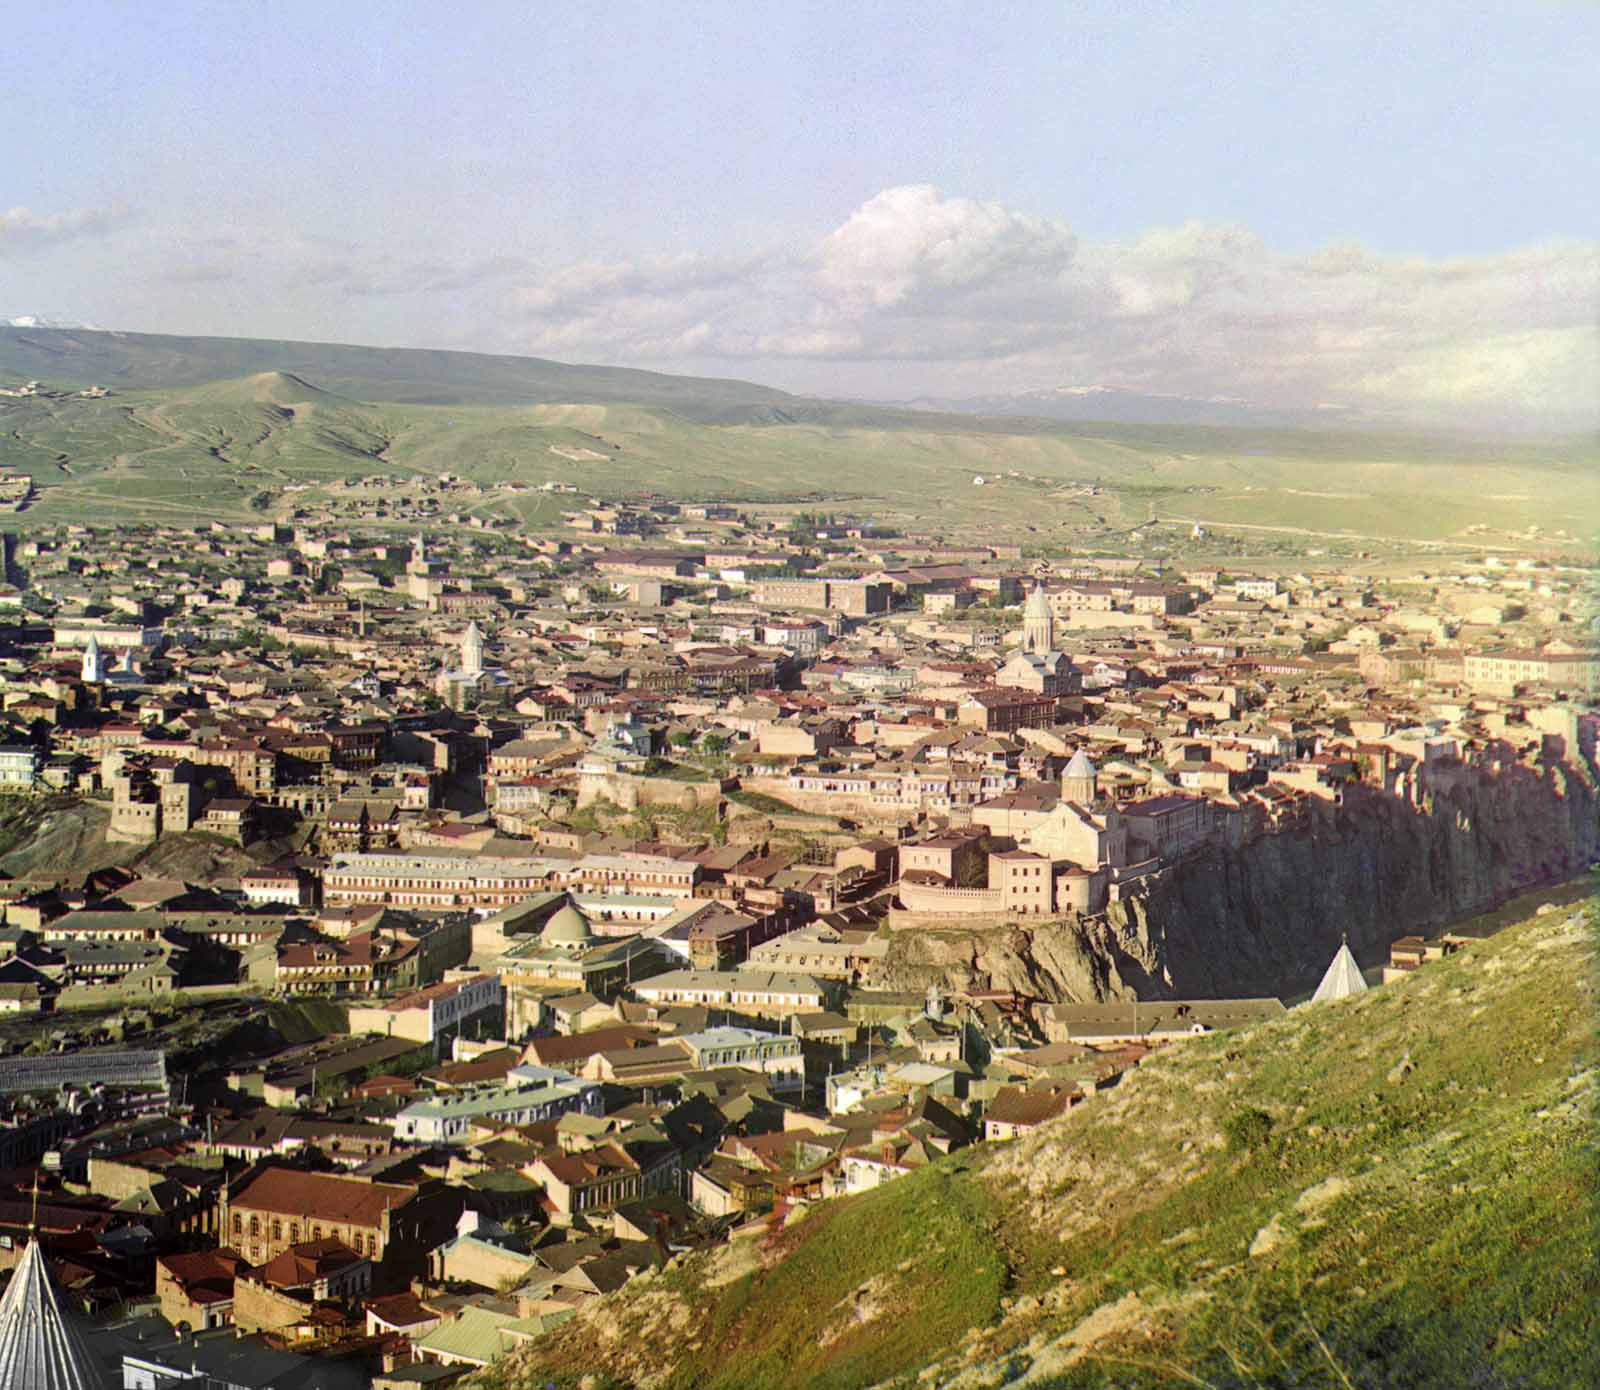 View of Tiflis (Tblisi), Georgia from the grounds of Saint David Church, ca. 1910.